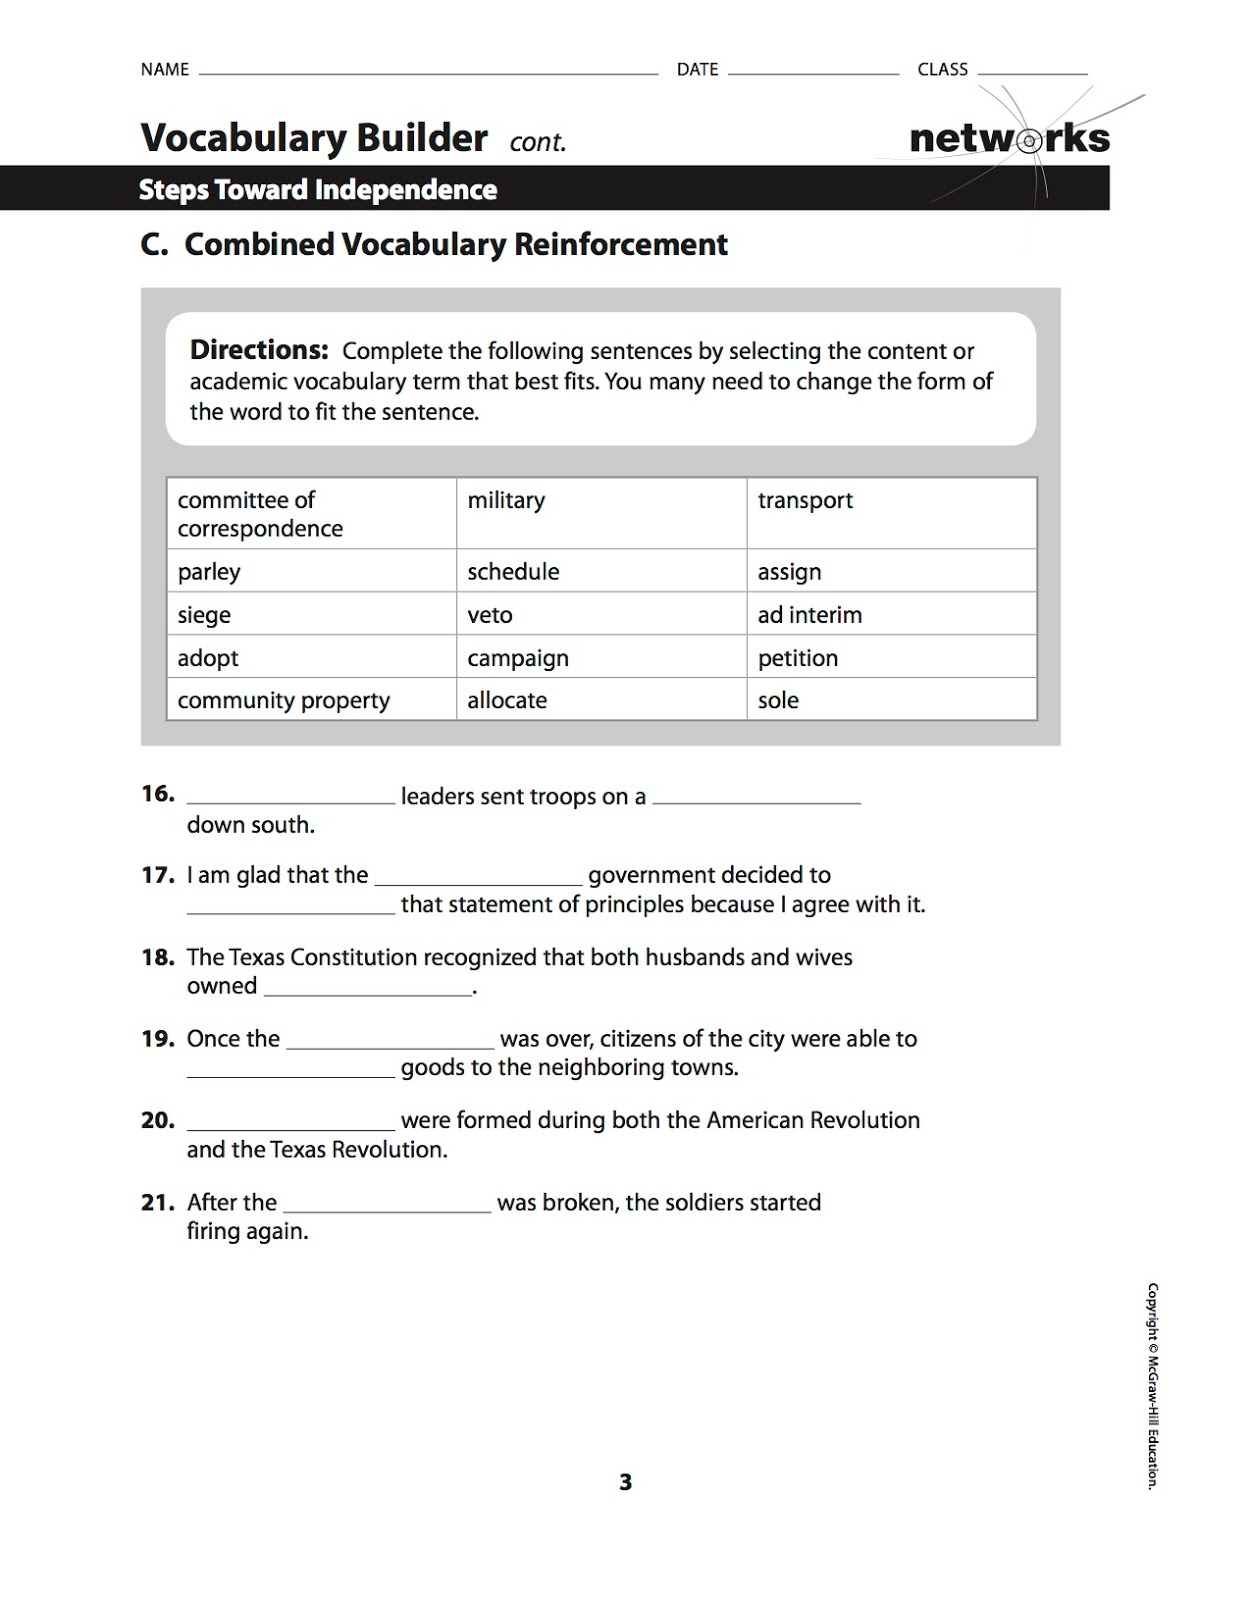 Vocabulary Builder Worksheets Photos